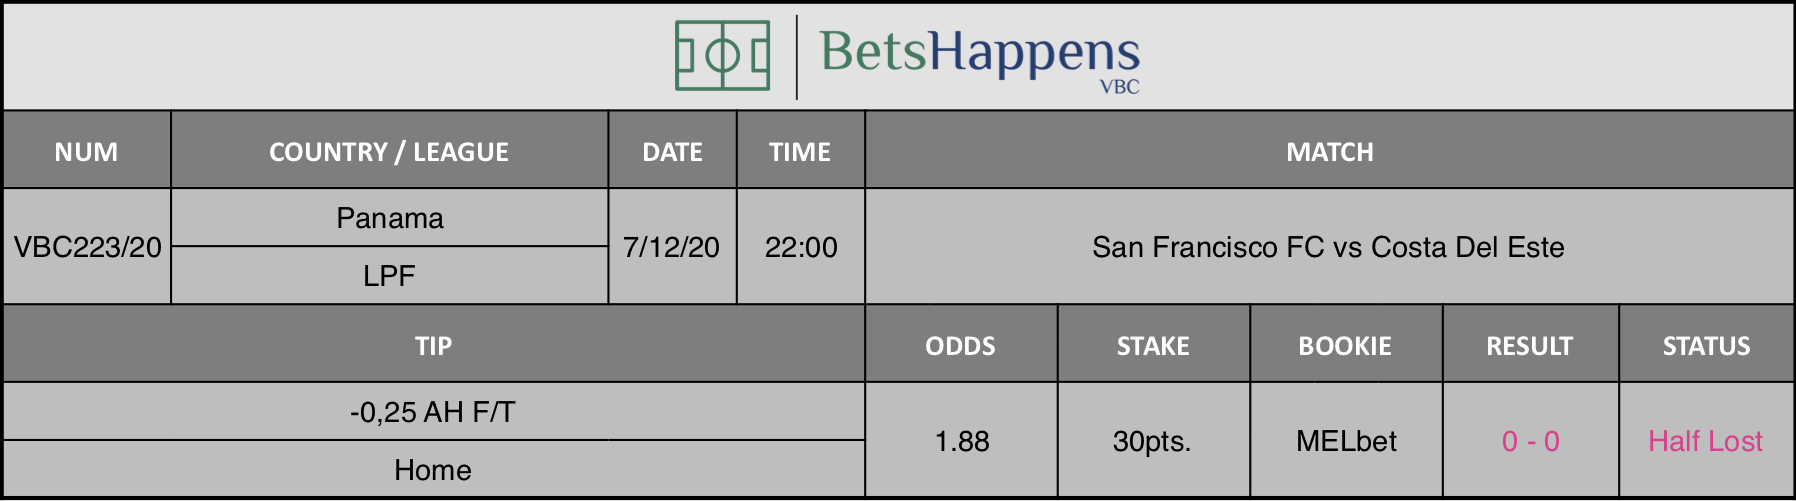 Results of our tip for the San Francisco FC vs Costa Del Este match where -0,25 AH F/T Home is recommended.